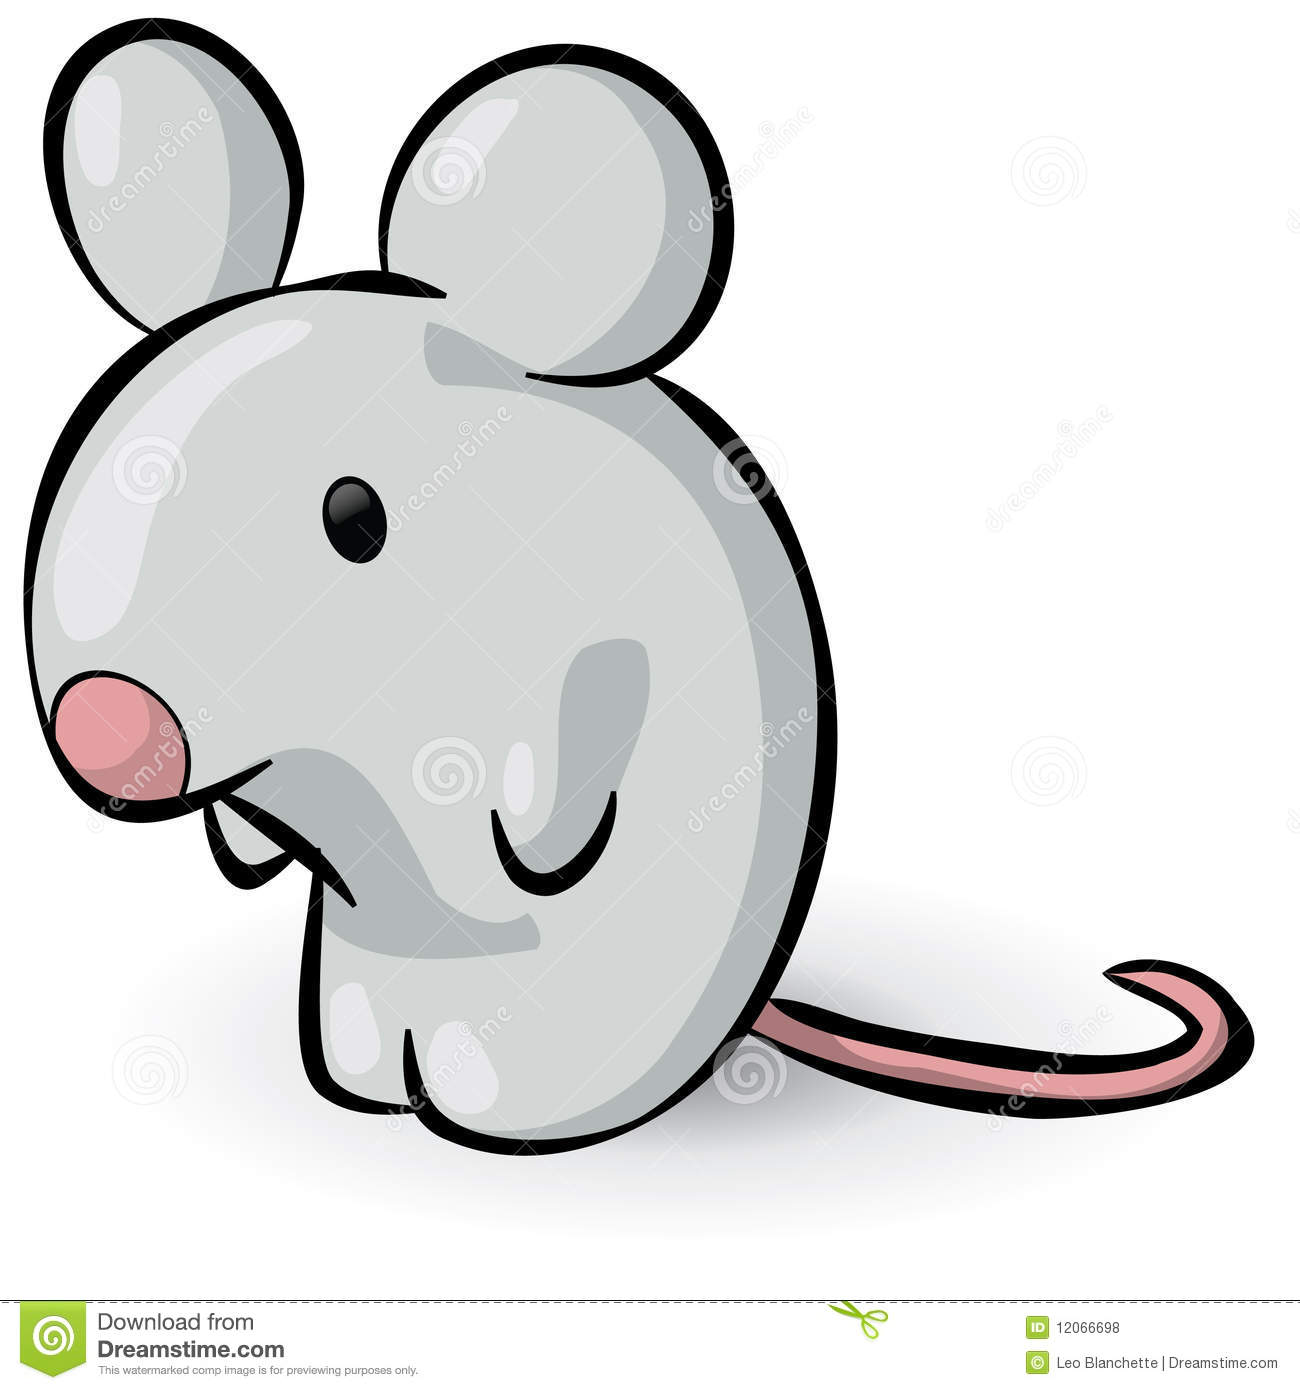 Pictures of cartoon mice. Rat clipart little mouse